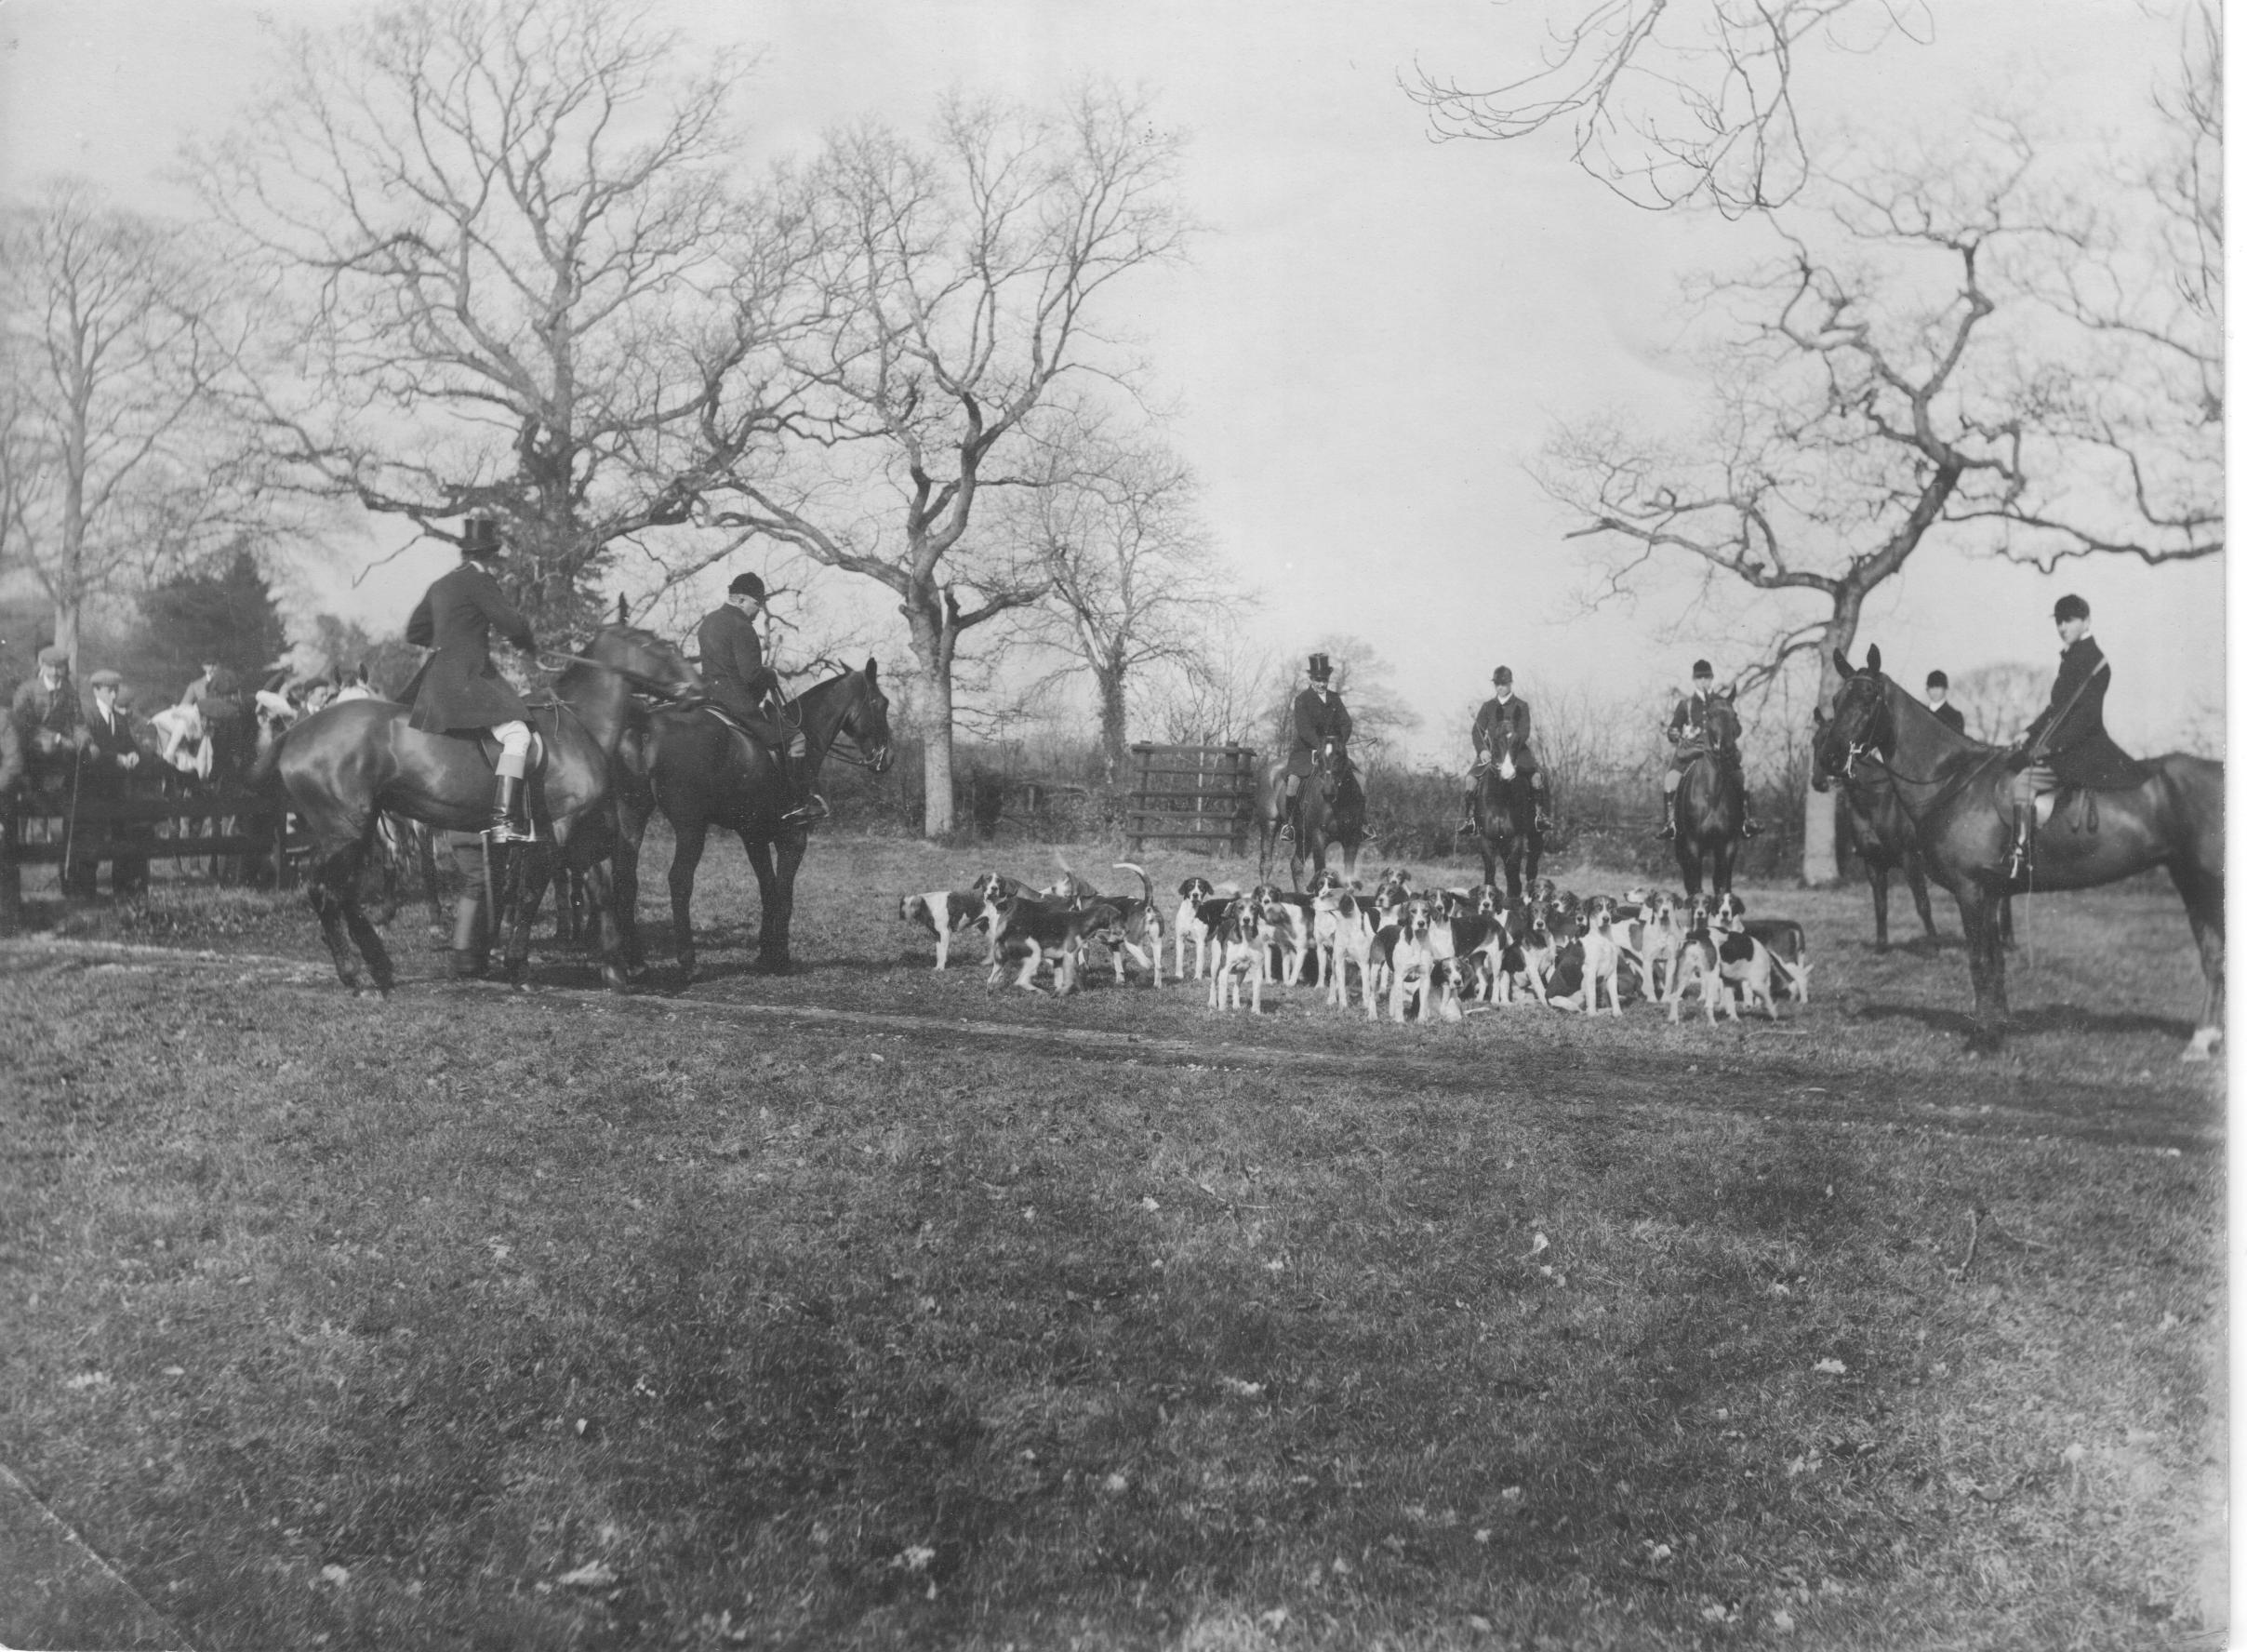 Foxhunting in England, 1906